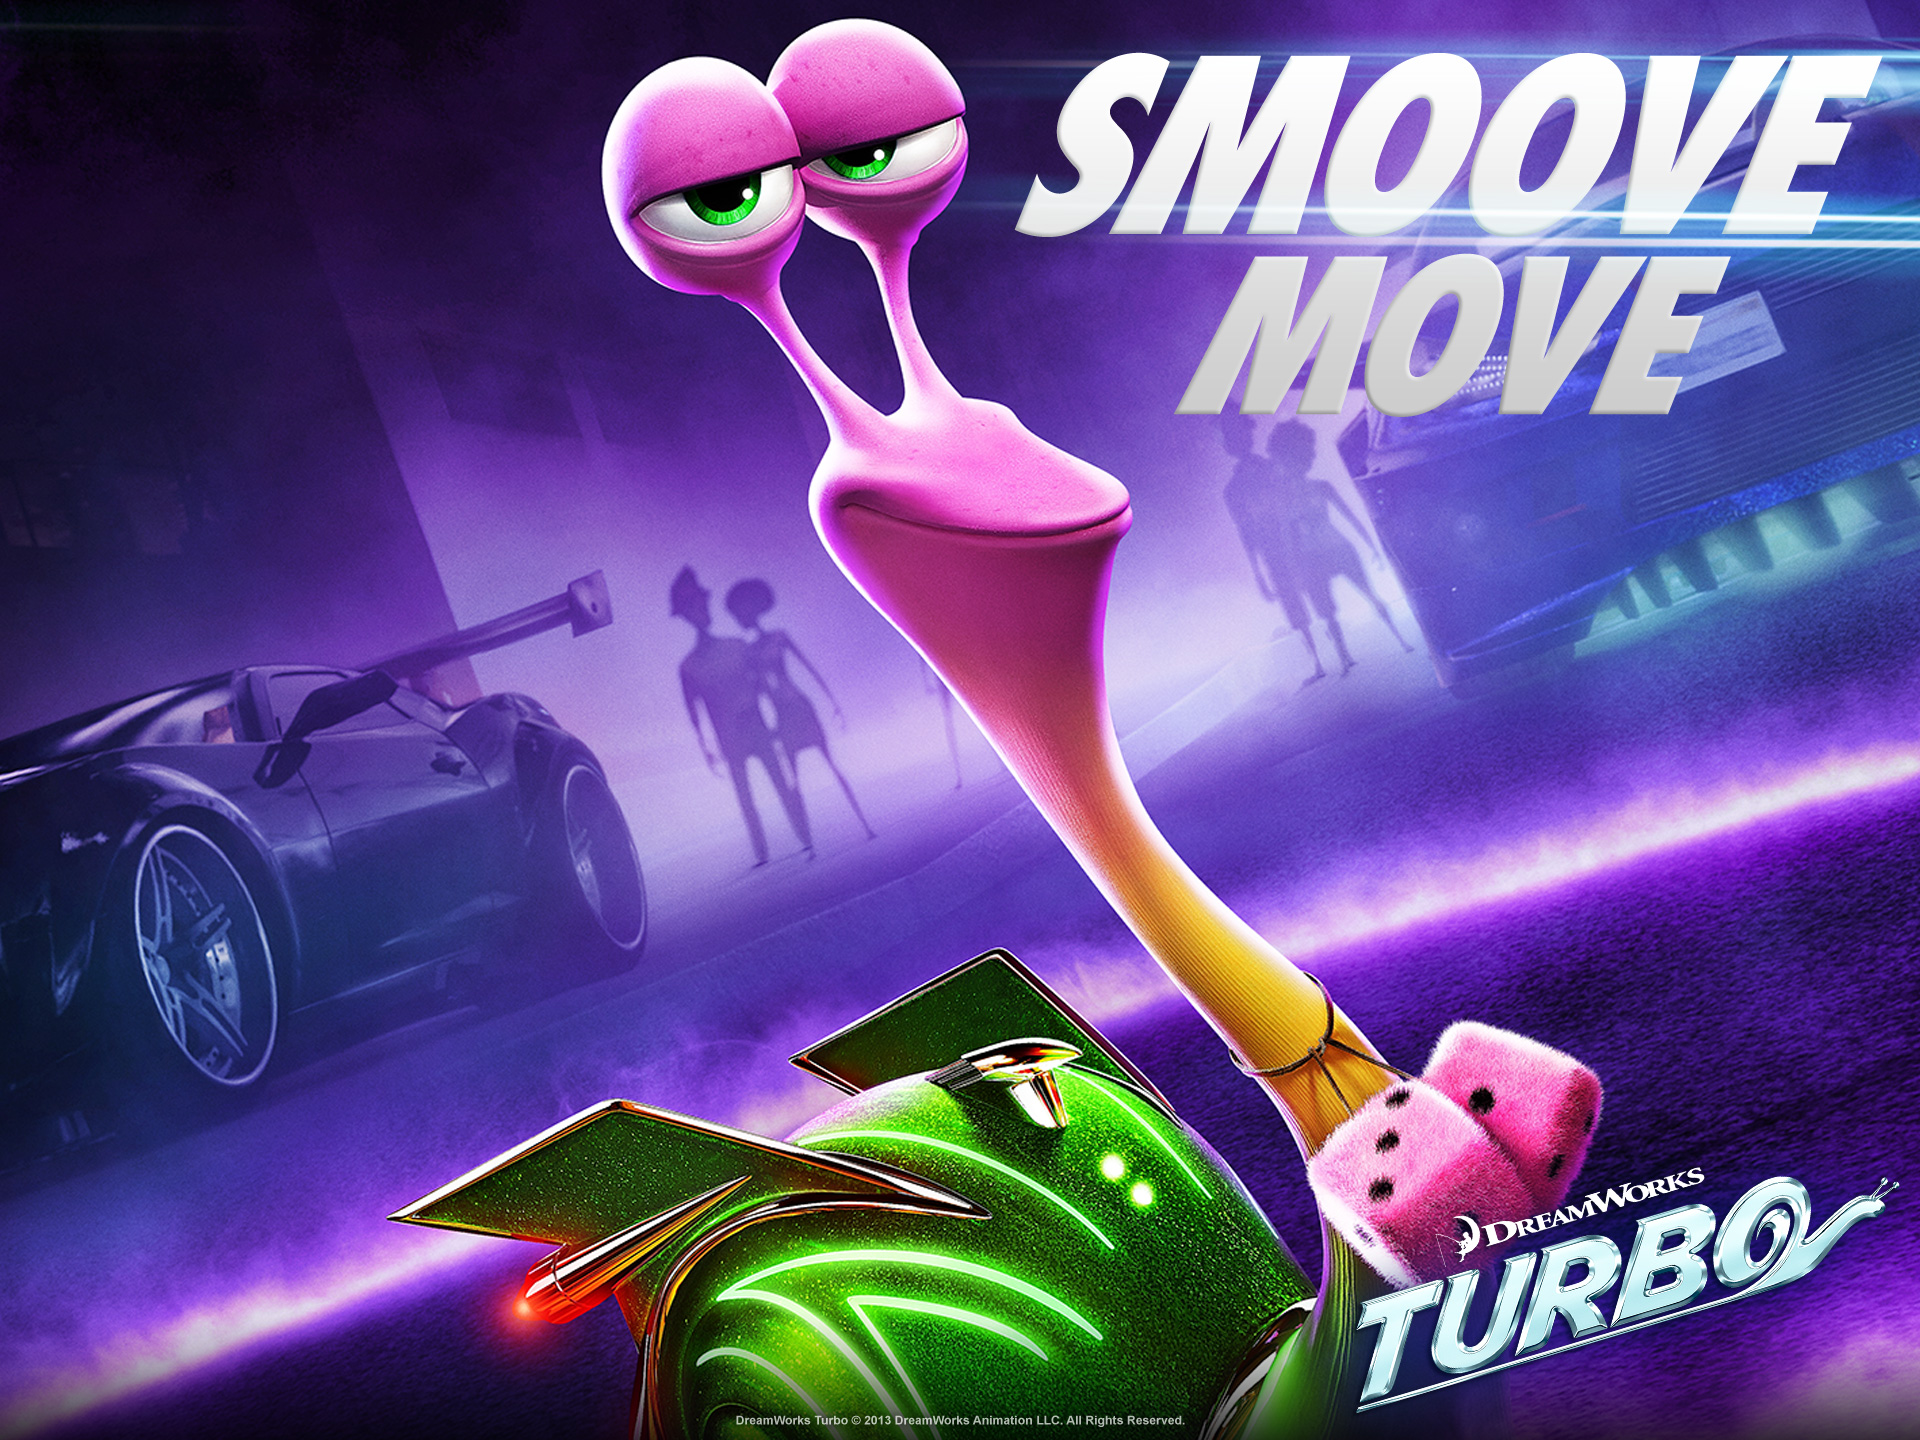 image - turbo-movie smoove-move wallpaper hd1 | turbo wiki